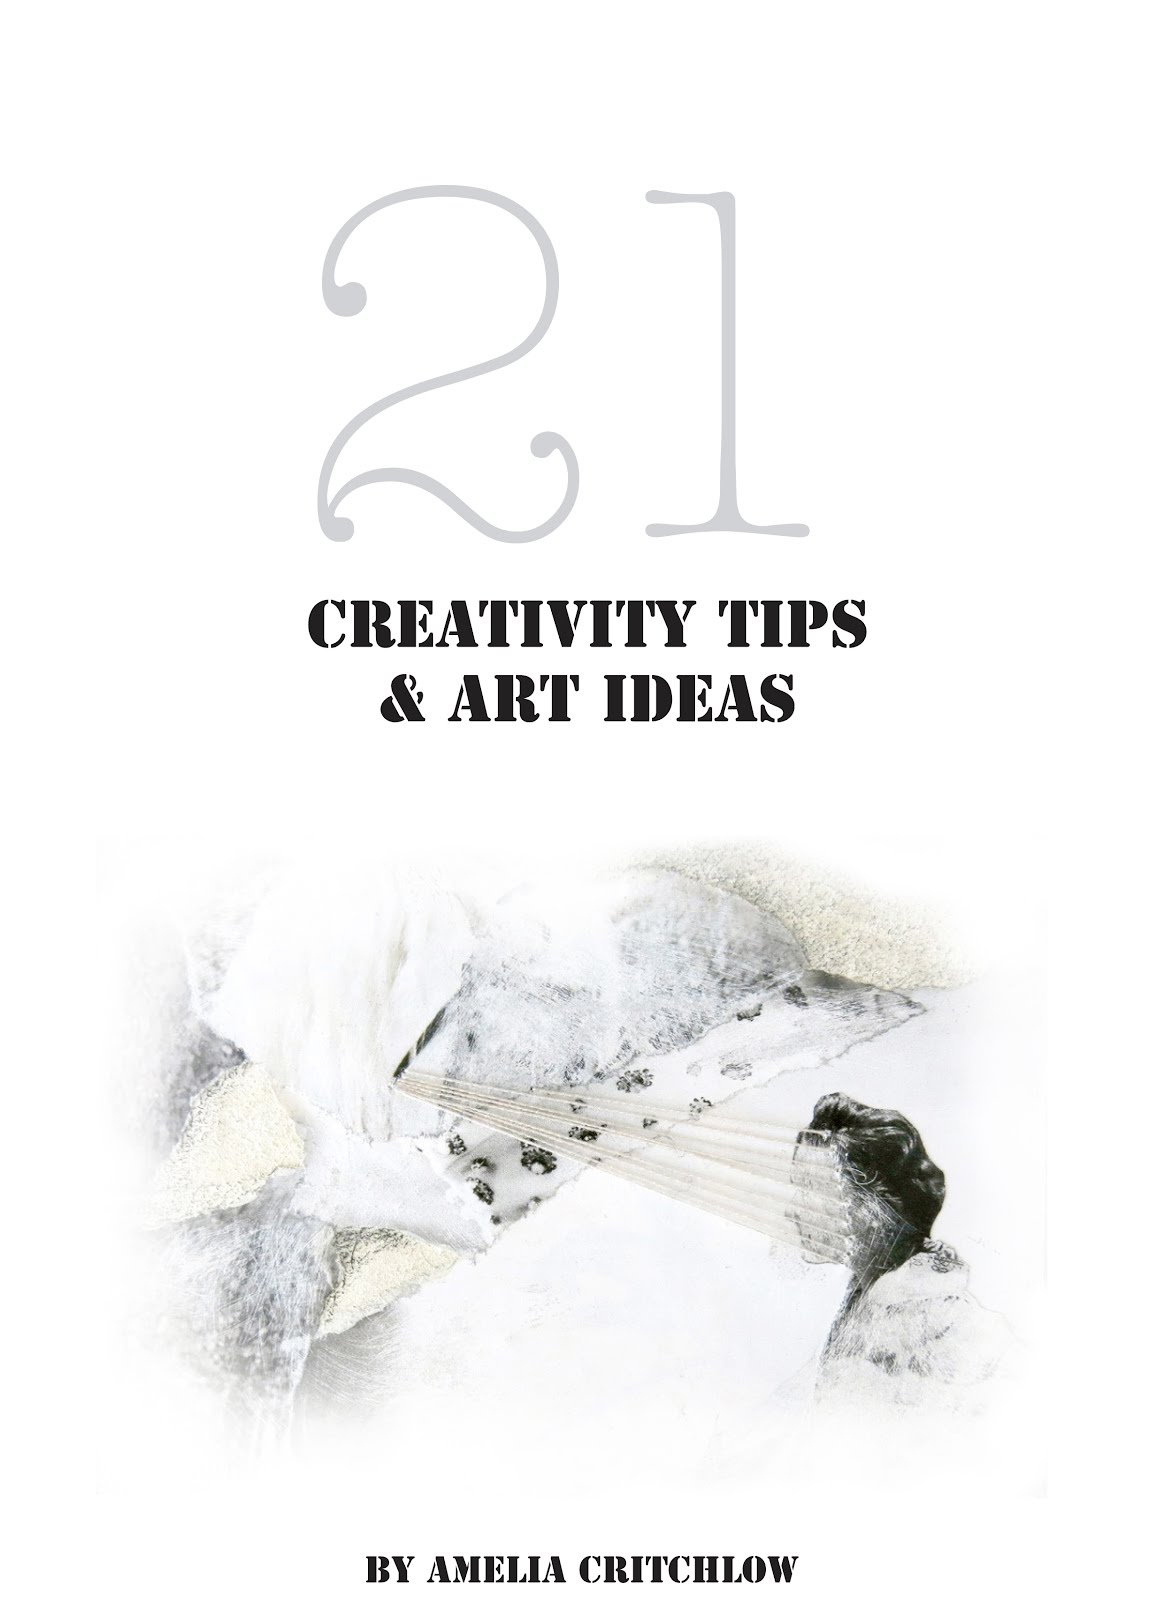 subscribe below for your FREE 21 creativity tips & art ideas e-book